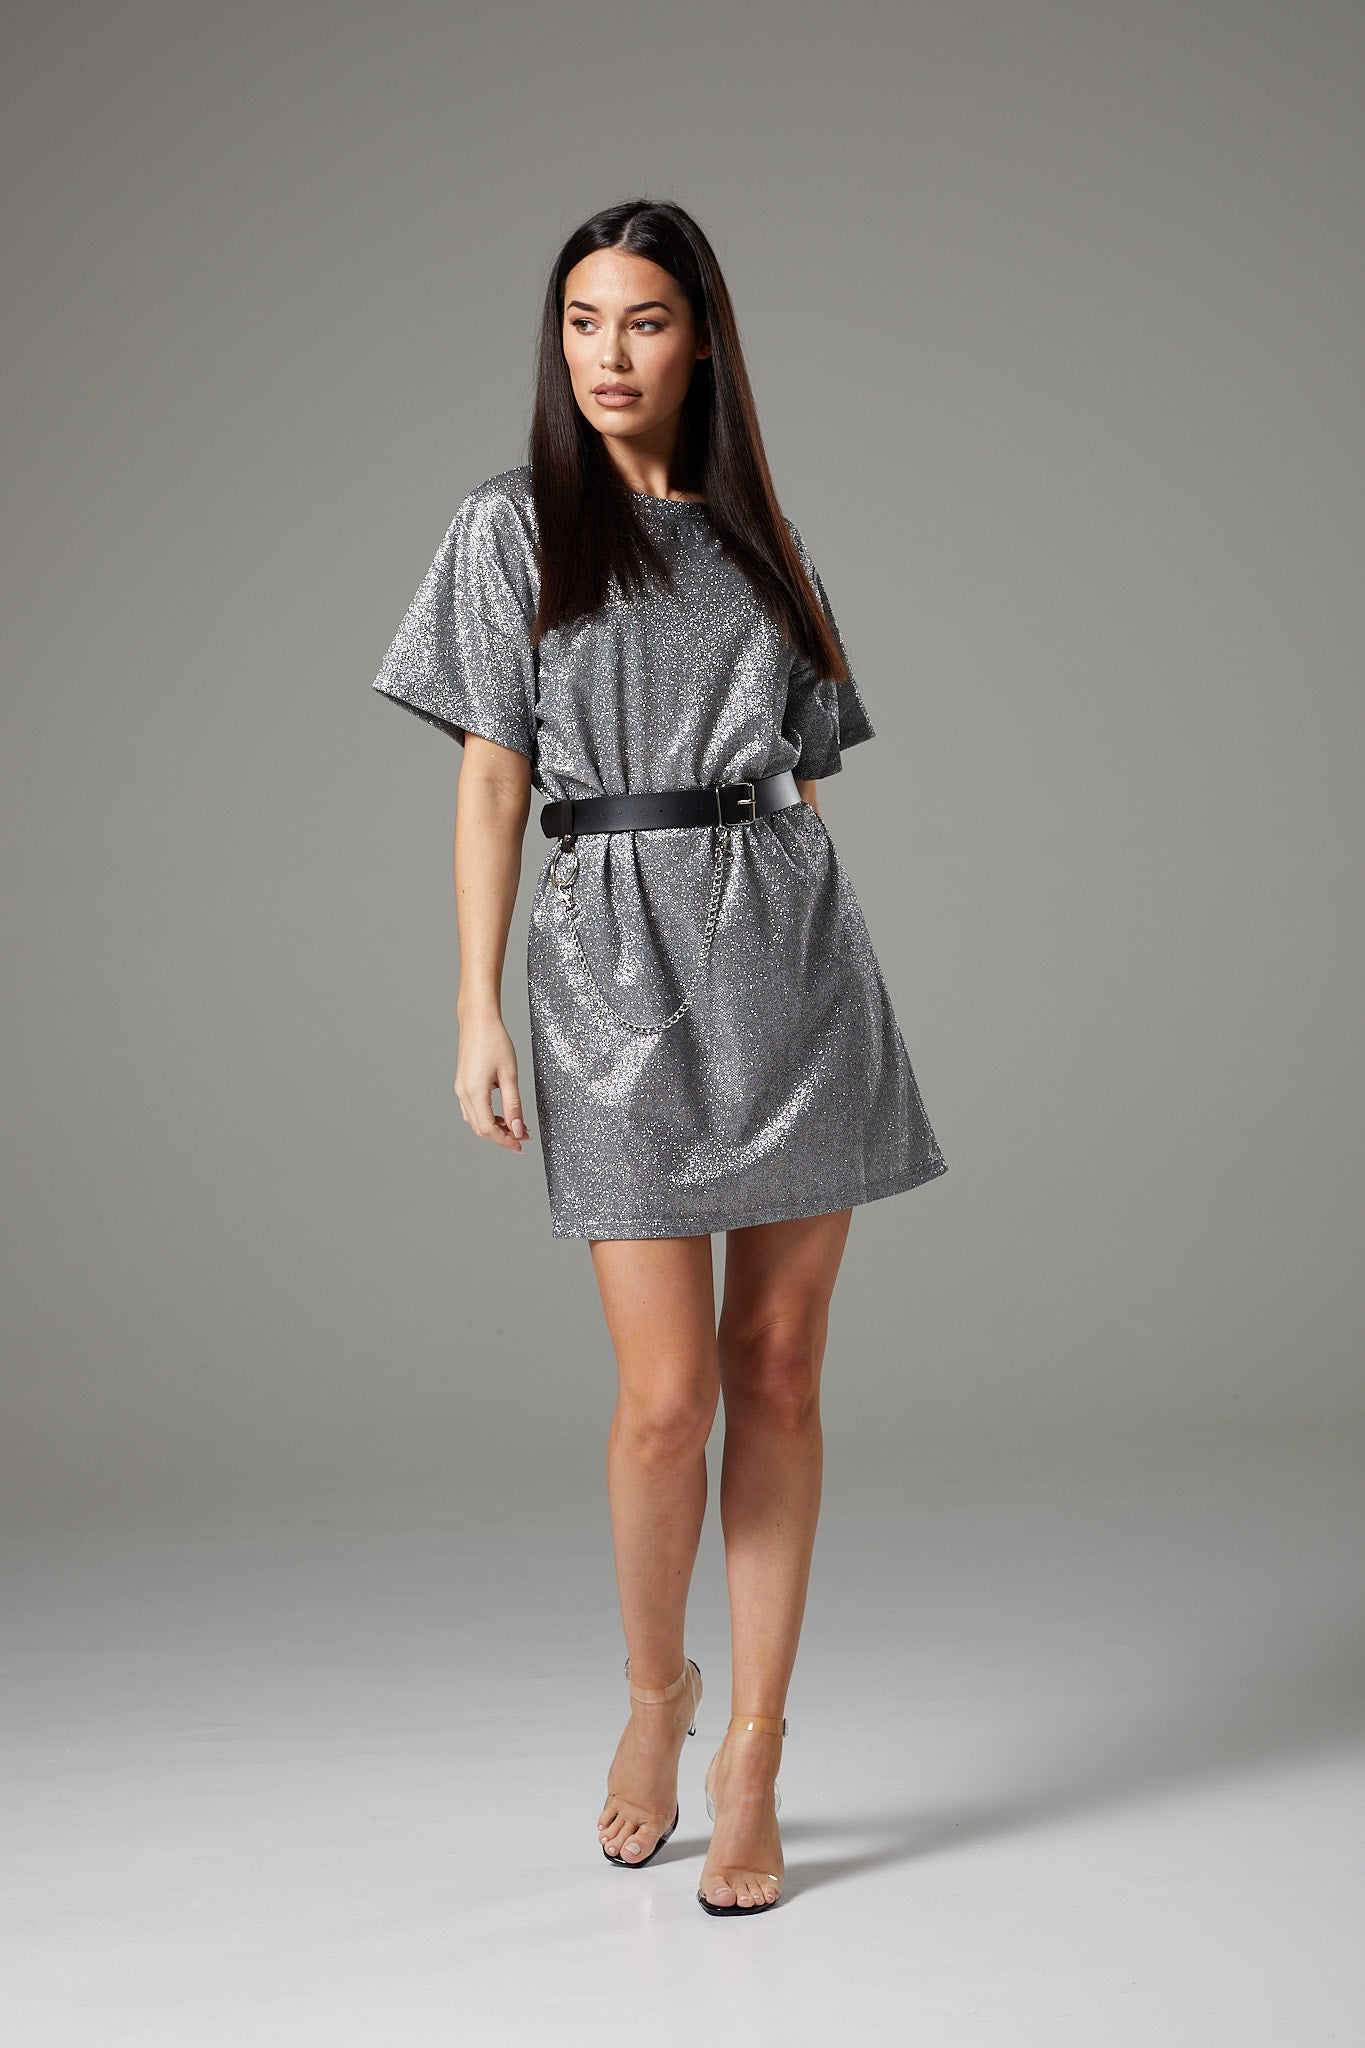 Sparkly Silver Oversized Dress with Belt